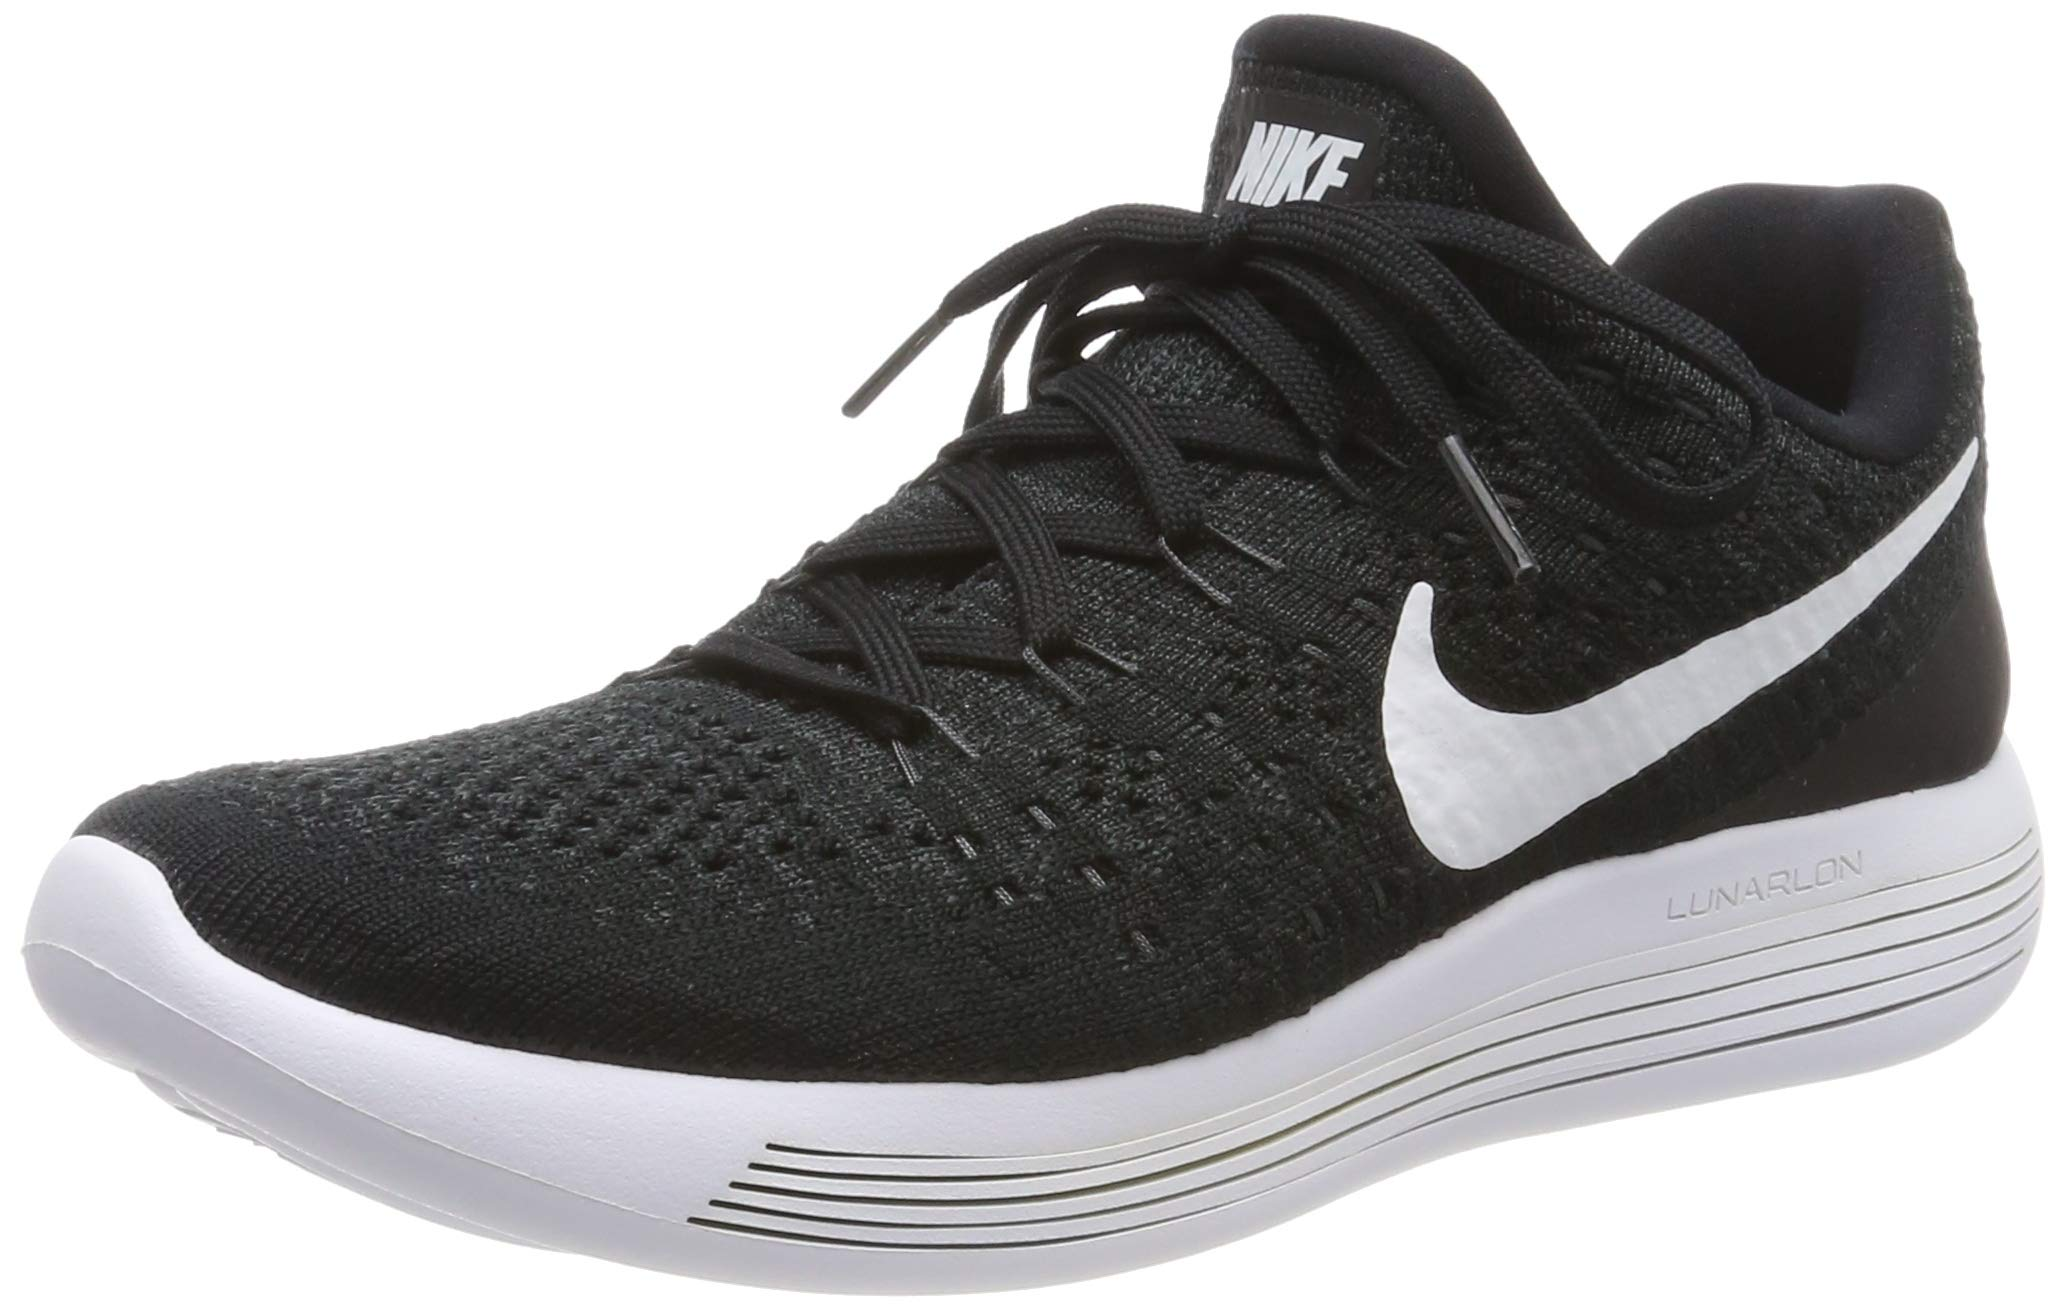 Nike Womens Lunarepic Low Flyknit 2 Fabric Low, Black/White/Anthracite, Size 5.0